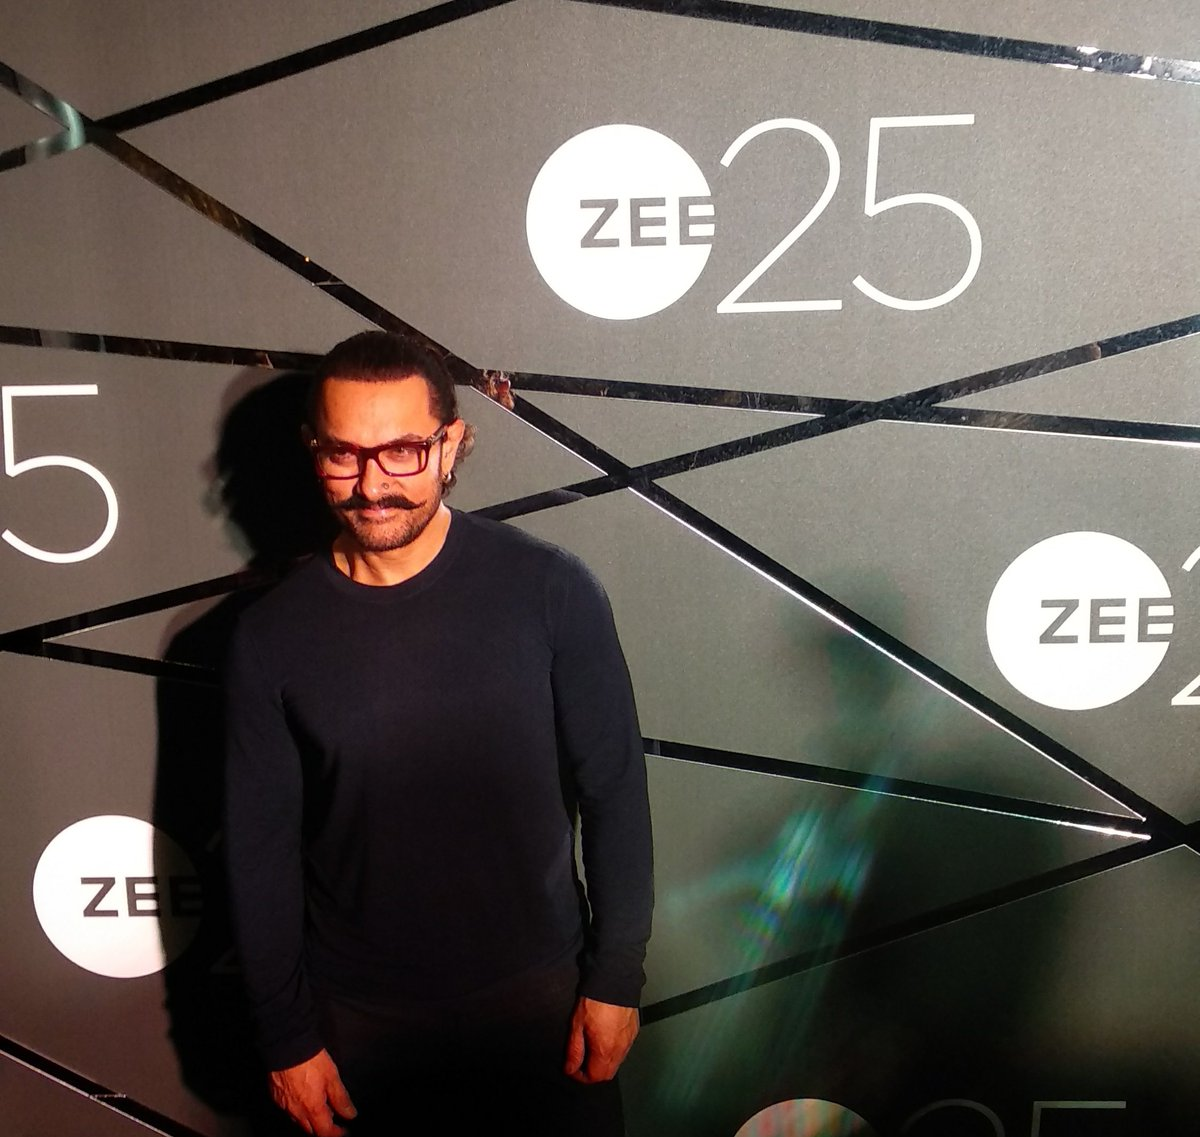 RT @bollywood_life: The perfectionist @aamir_khan arrives at the #Zee25 party https://t.co/3gy6c1n5lZ